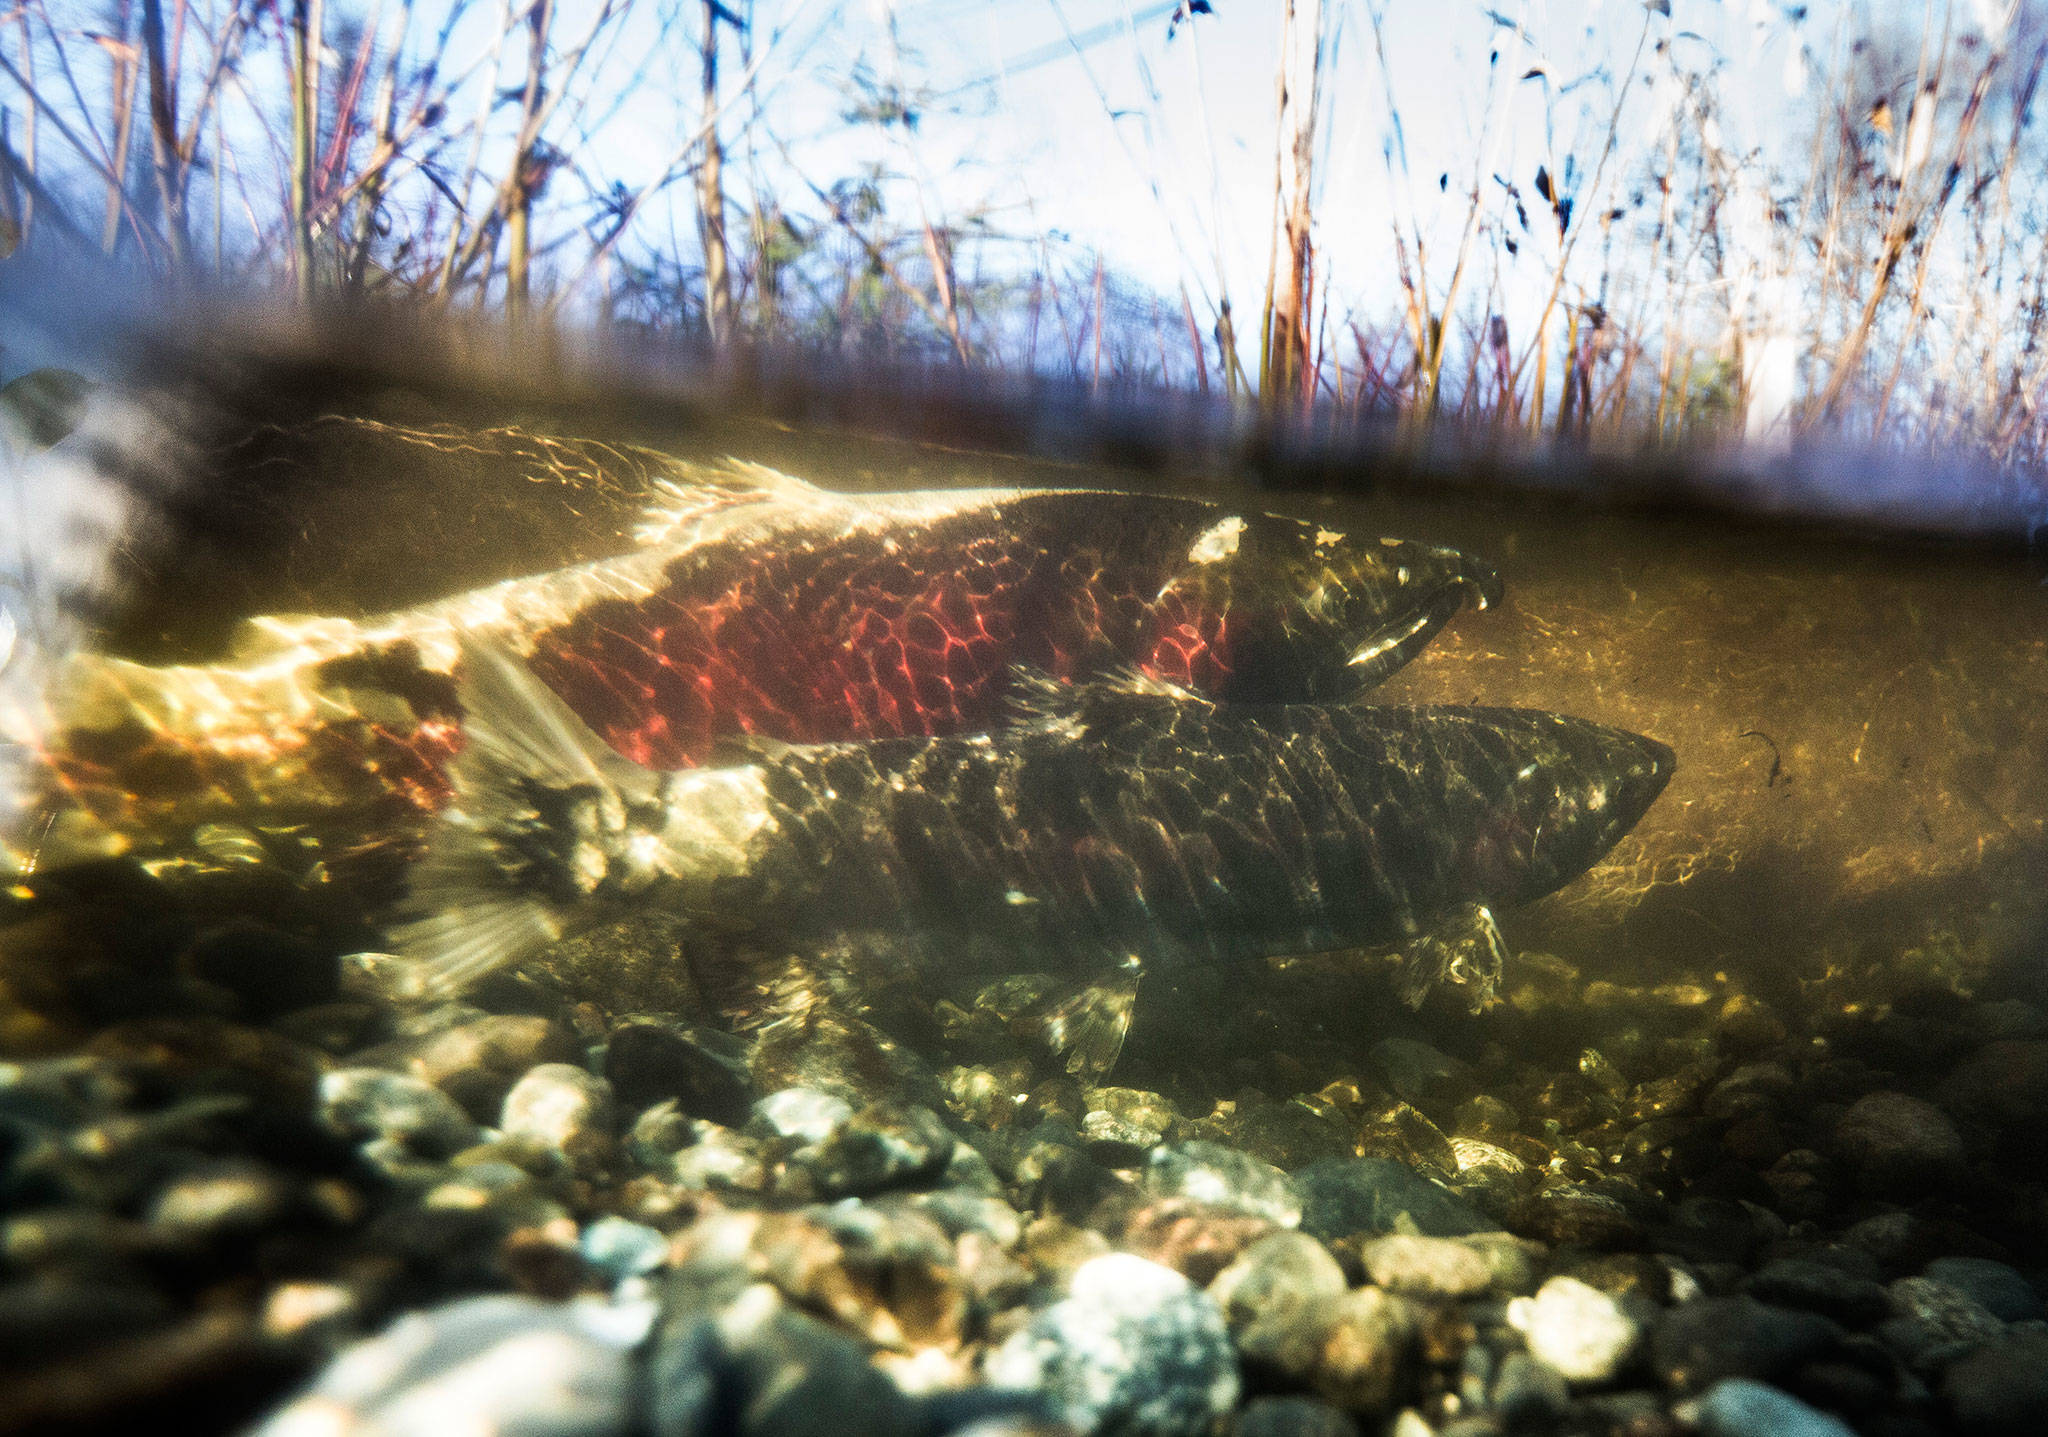 A male and female coho spawn Dec. 3 in the newly revitalized Edgecomb Creek that runs along Highway 531 in Arlington. (Olivia Vanni / The Herald)